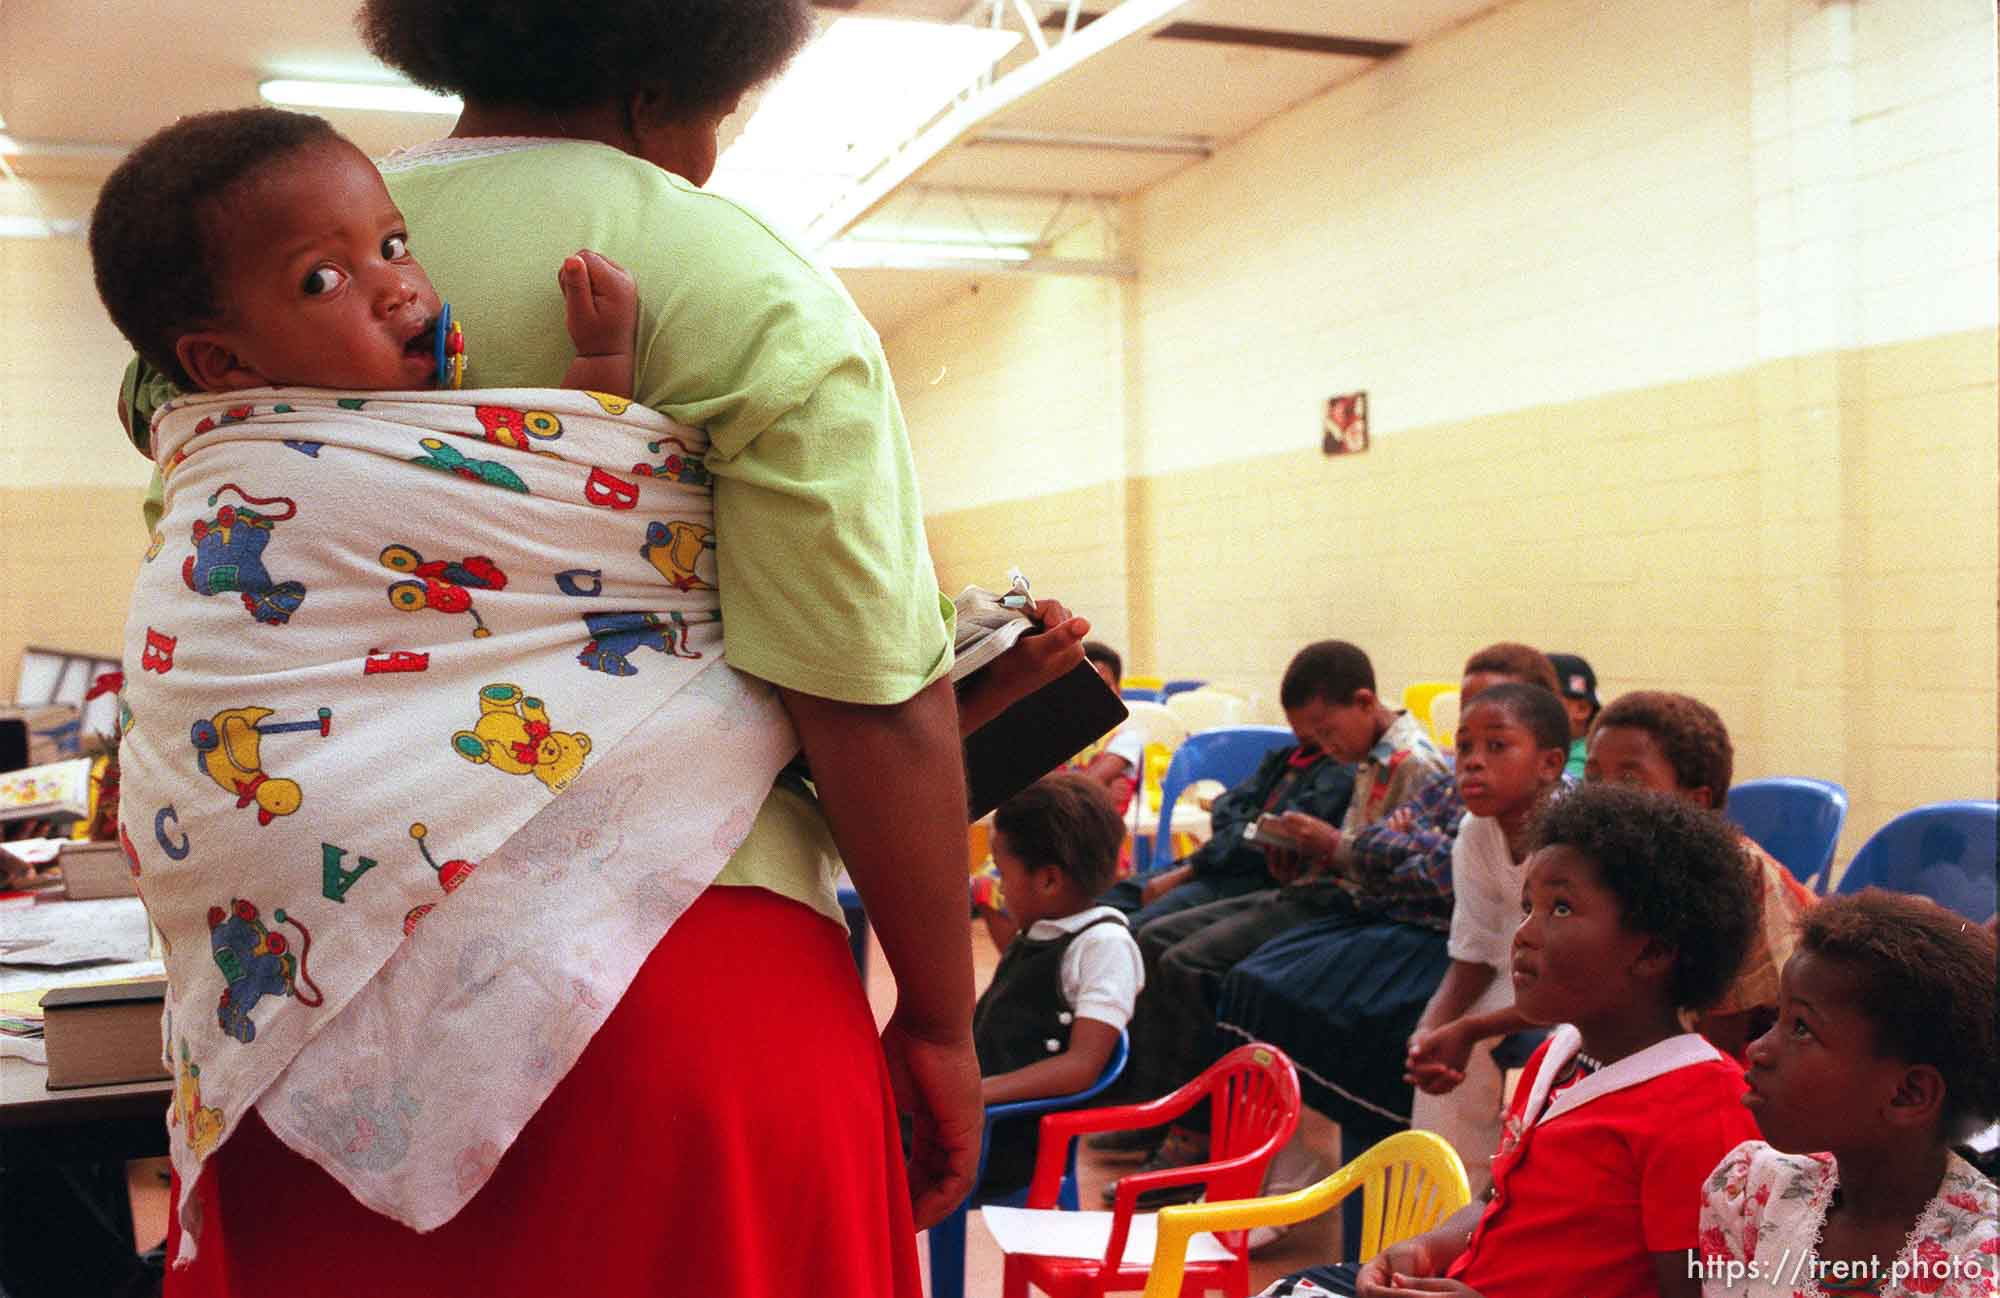 Zekey Tshetu (15 months old) on his mother, Thirsly's back at an LDS primary meeting.